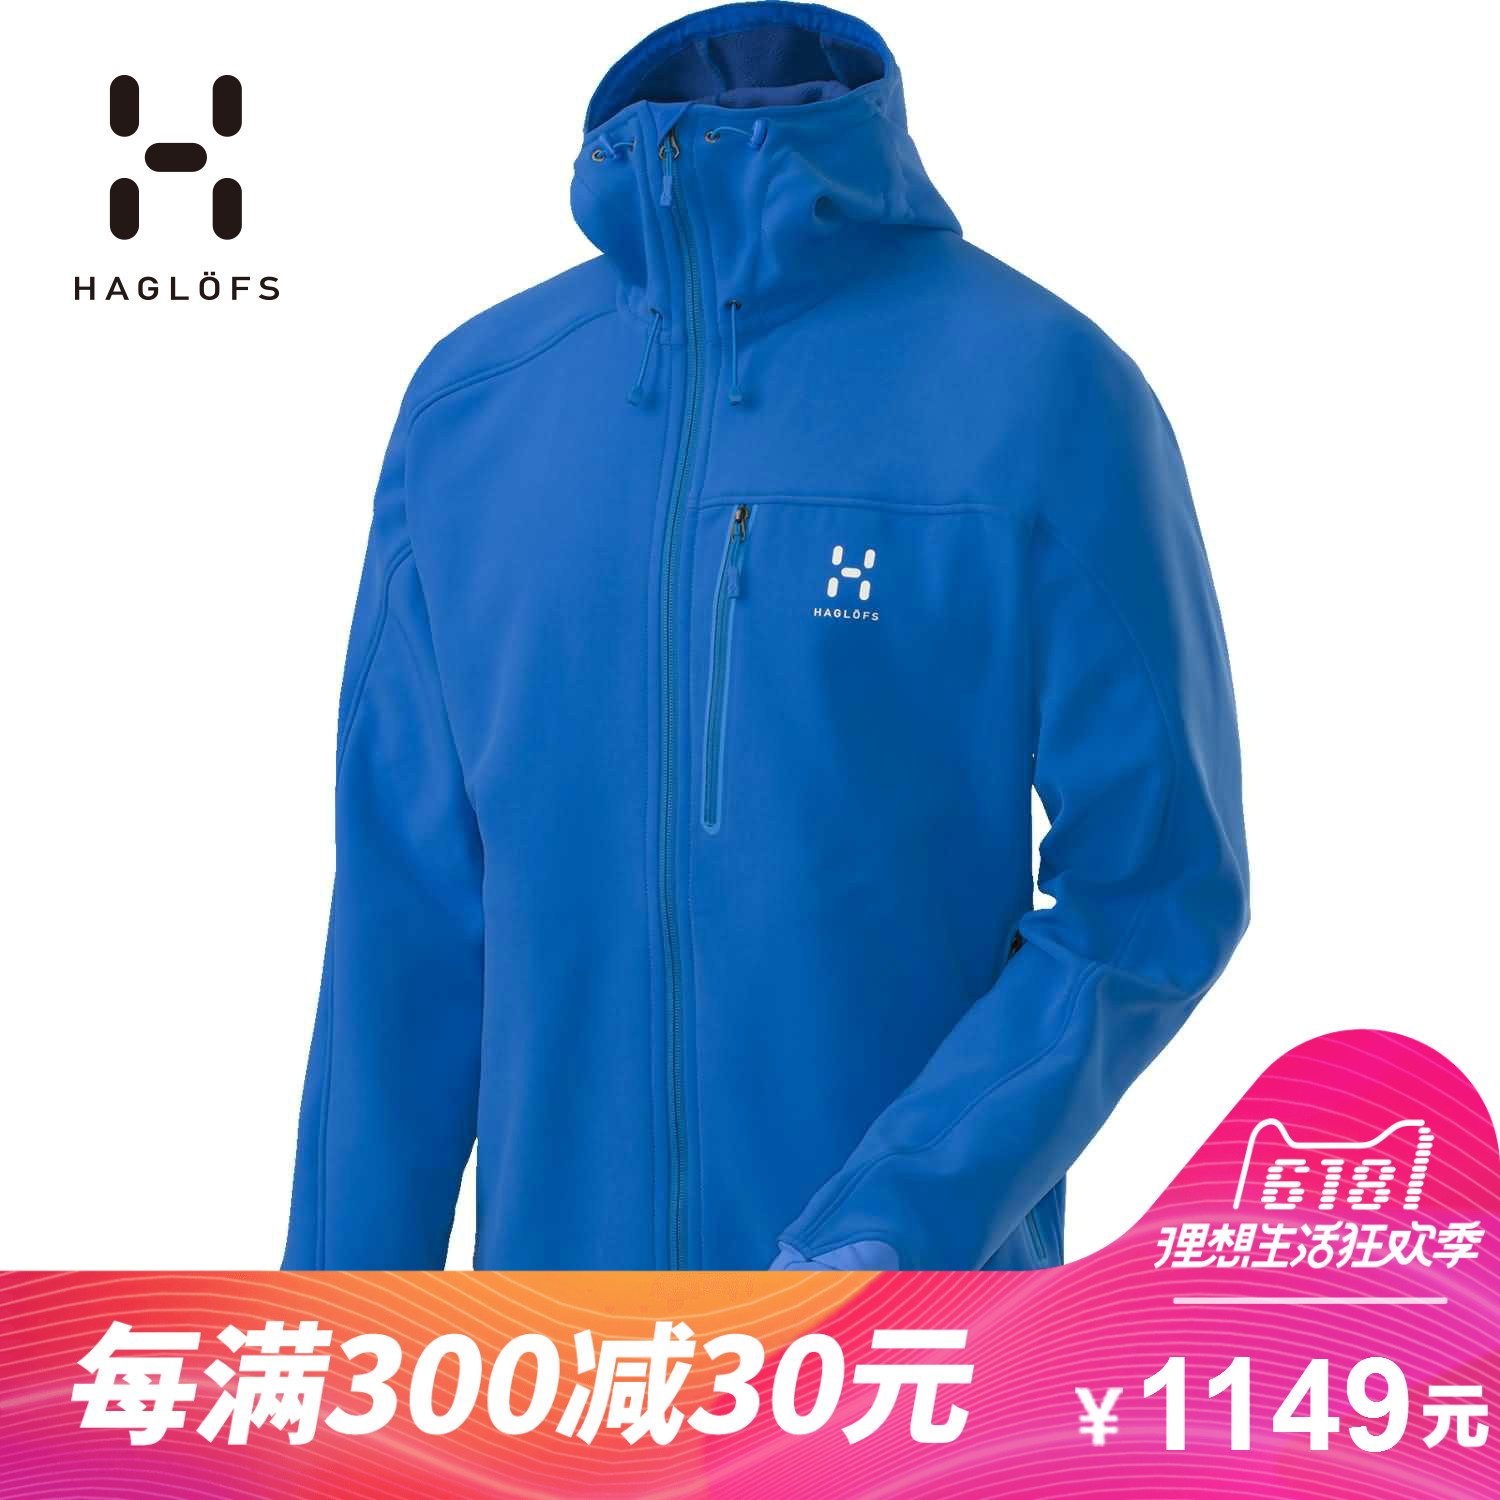 [The goods stop production and no stock]HAGLOFS/matchsticks Men's outdoor windproof warm soft hooded soft shell top Hood 602203